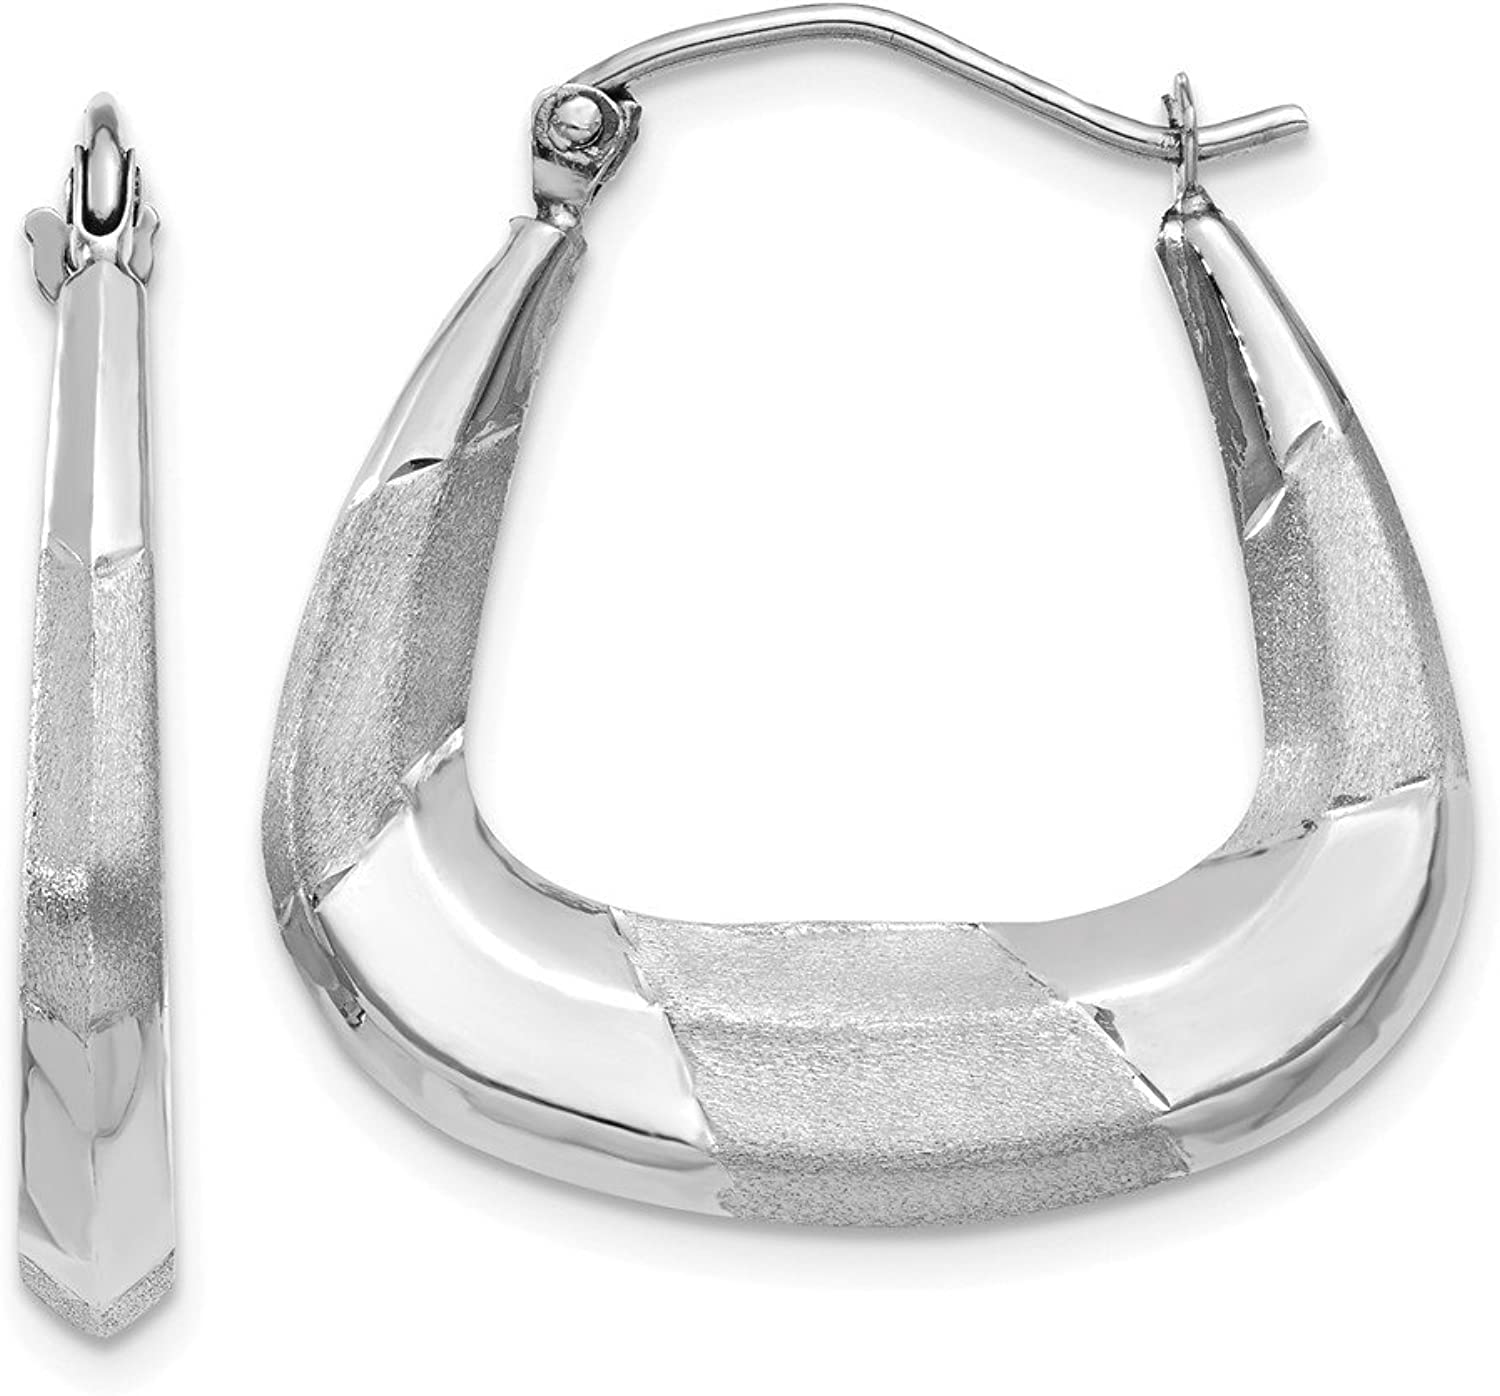 Beautiful White gold 14K 14k White gold Polished, Satin and Diamondcut Hoop Earrings